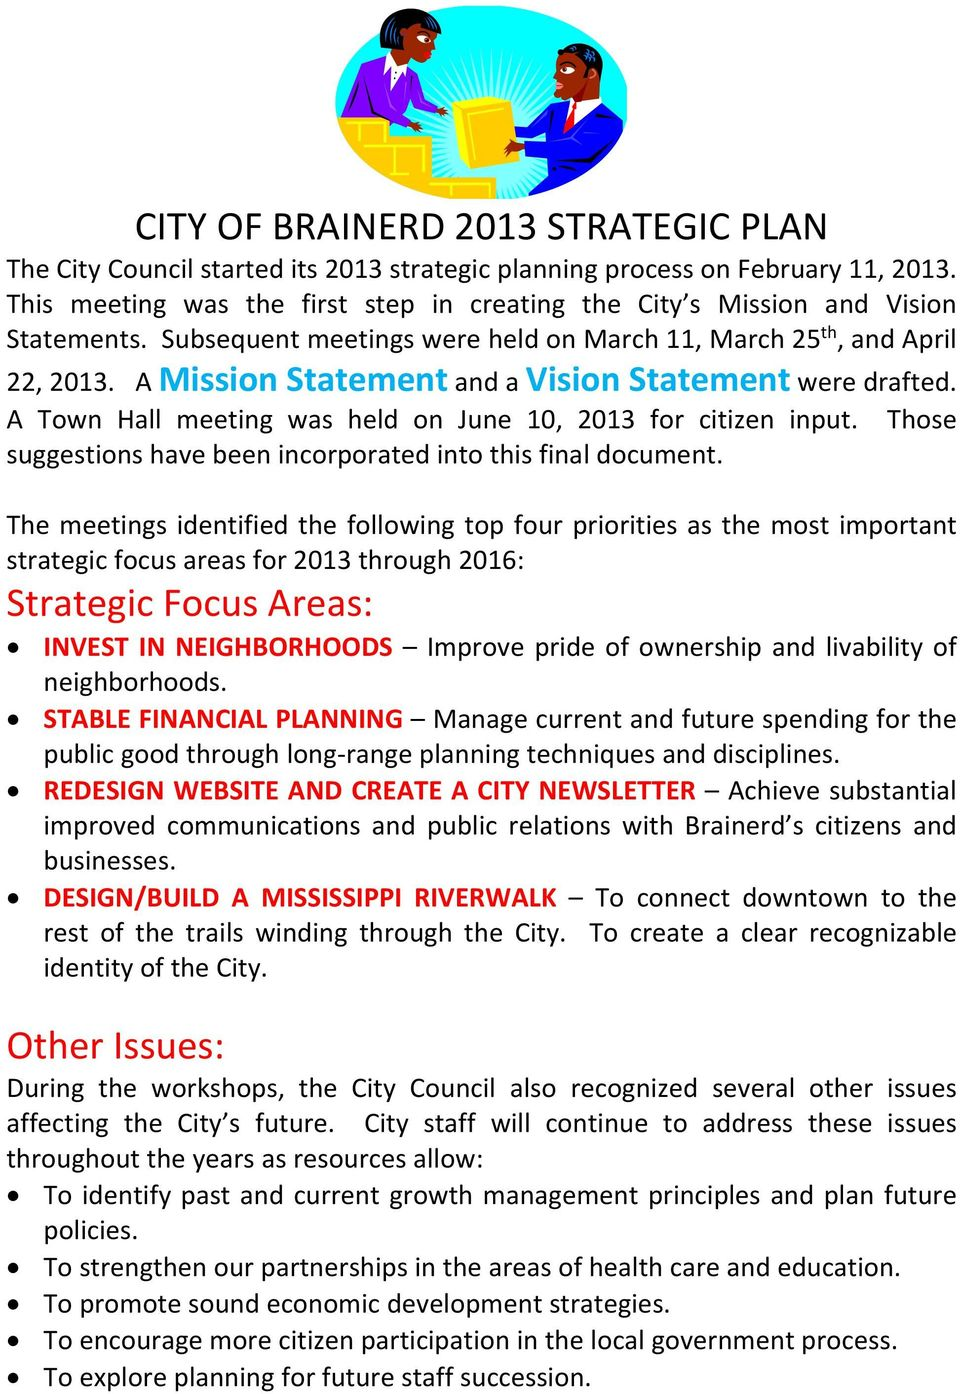 A Mission Statement and a Vision Statement were drafted. A Town Hall meeting was held on June 10, 2013 for citizen input. suggestions have been incorporated into this final document.